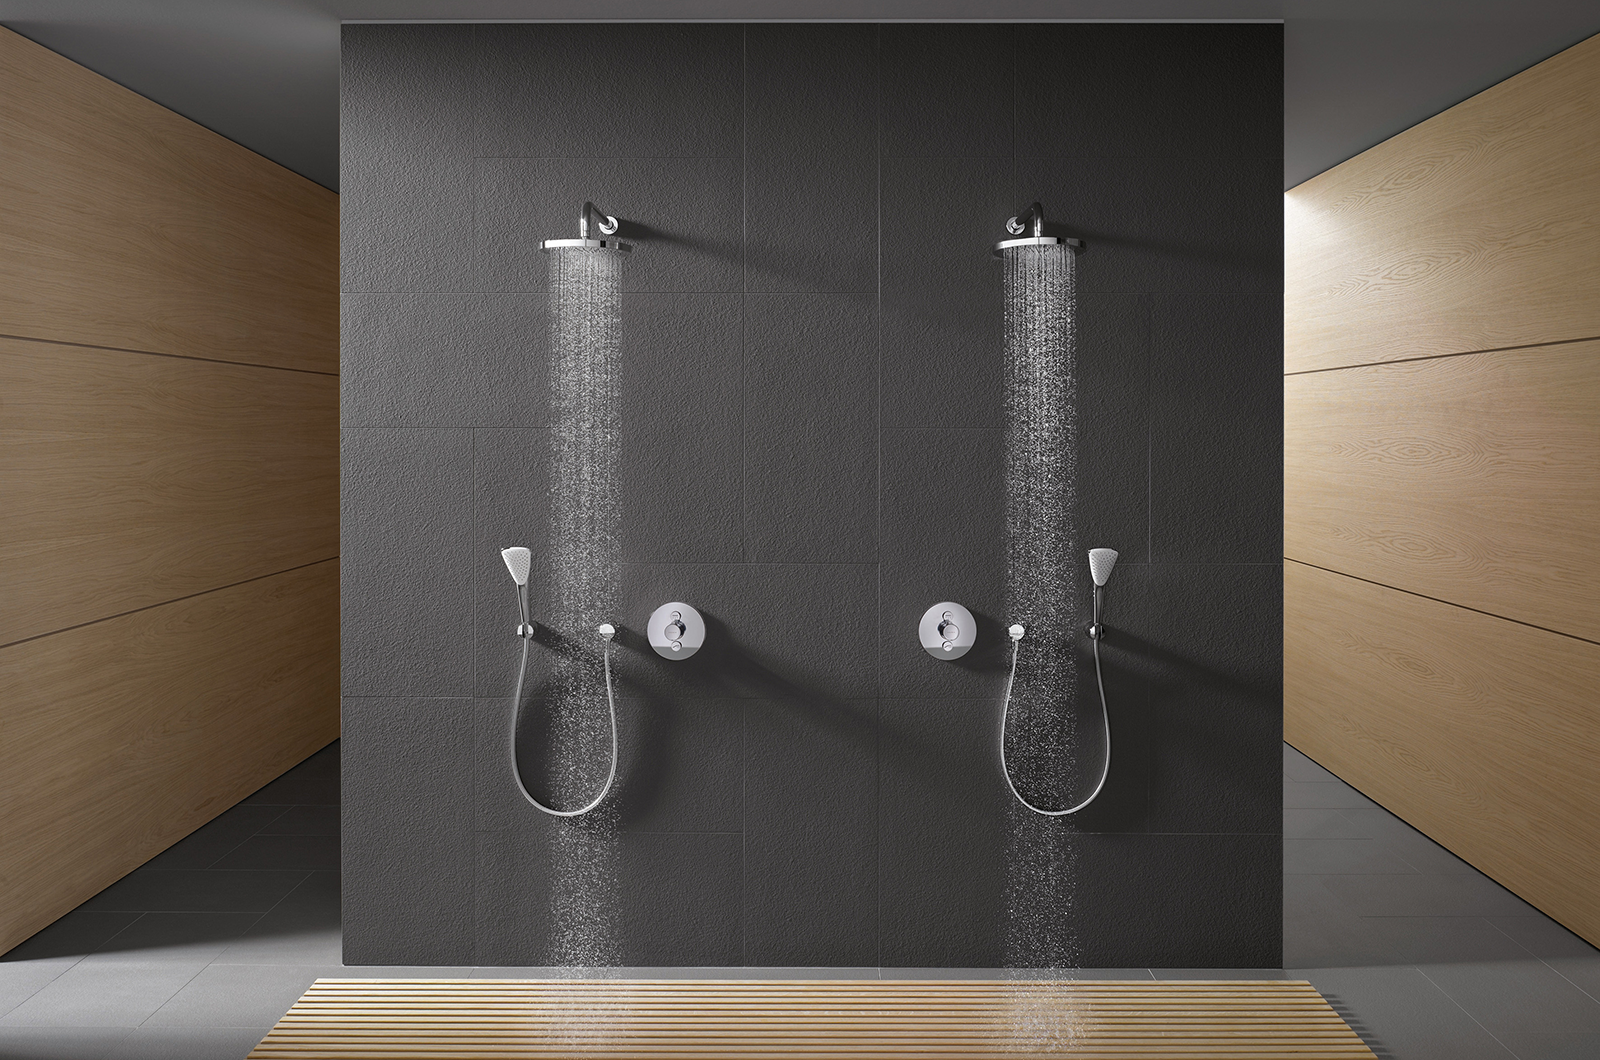 Kludi Push Operation Of Shower And Bathtub At The Push Of A Button